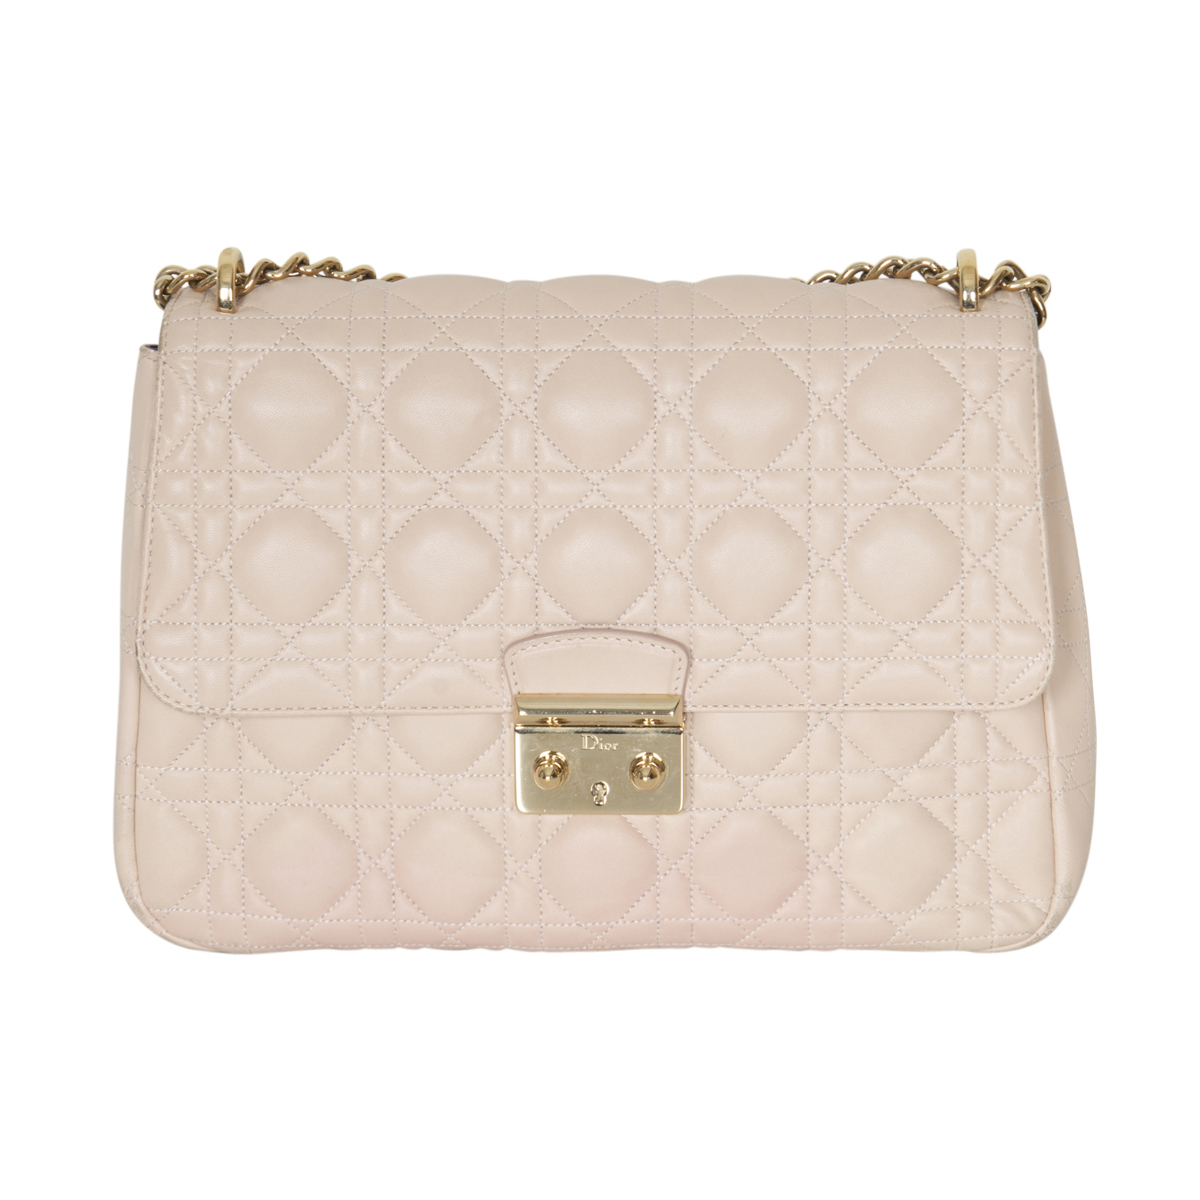 Dior Quilted Cannage Leather Handbag